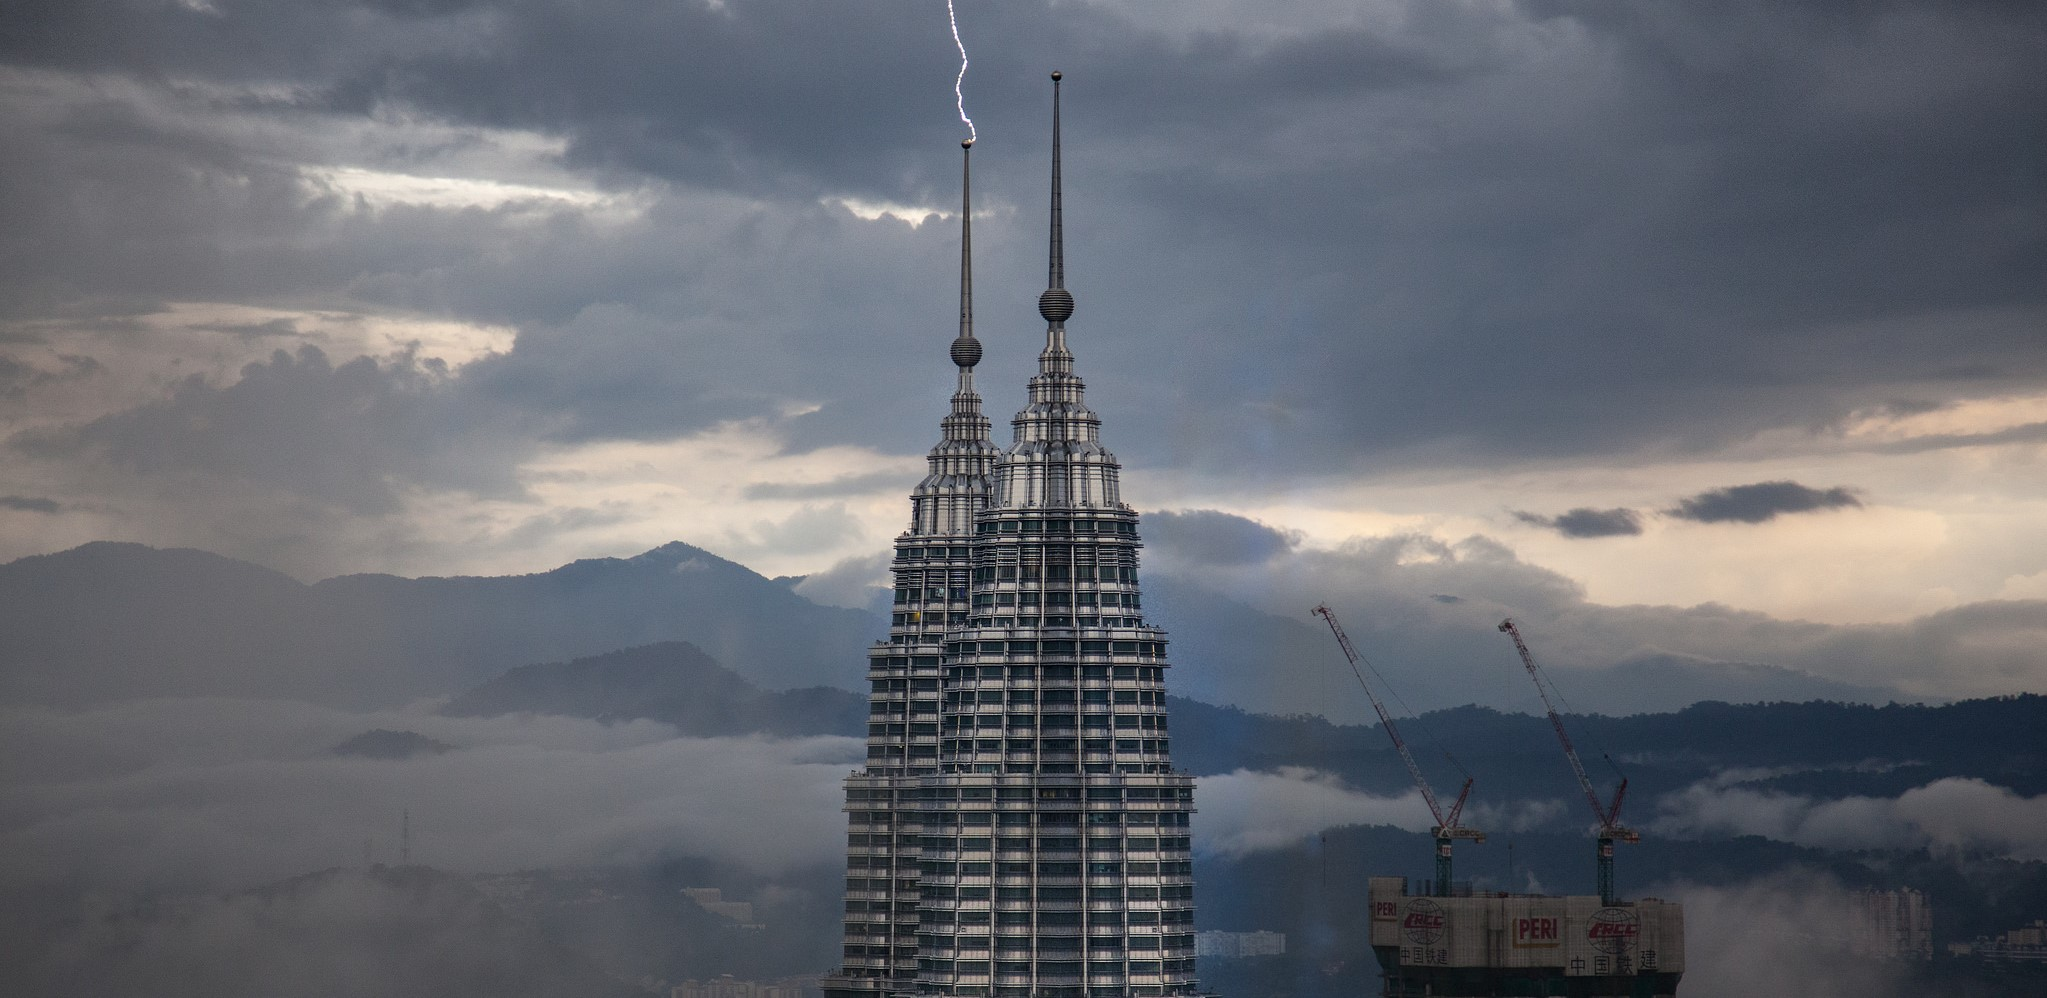 Lightning strikes the Petronas Towers, Kuala Lumpur, April 2017 (Photo: Flickr/Sitoo)